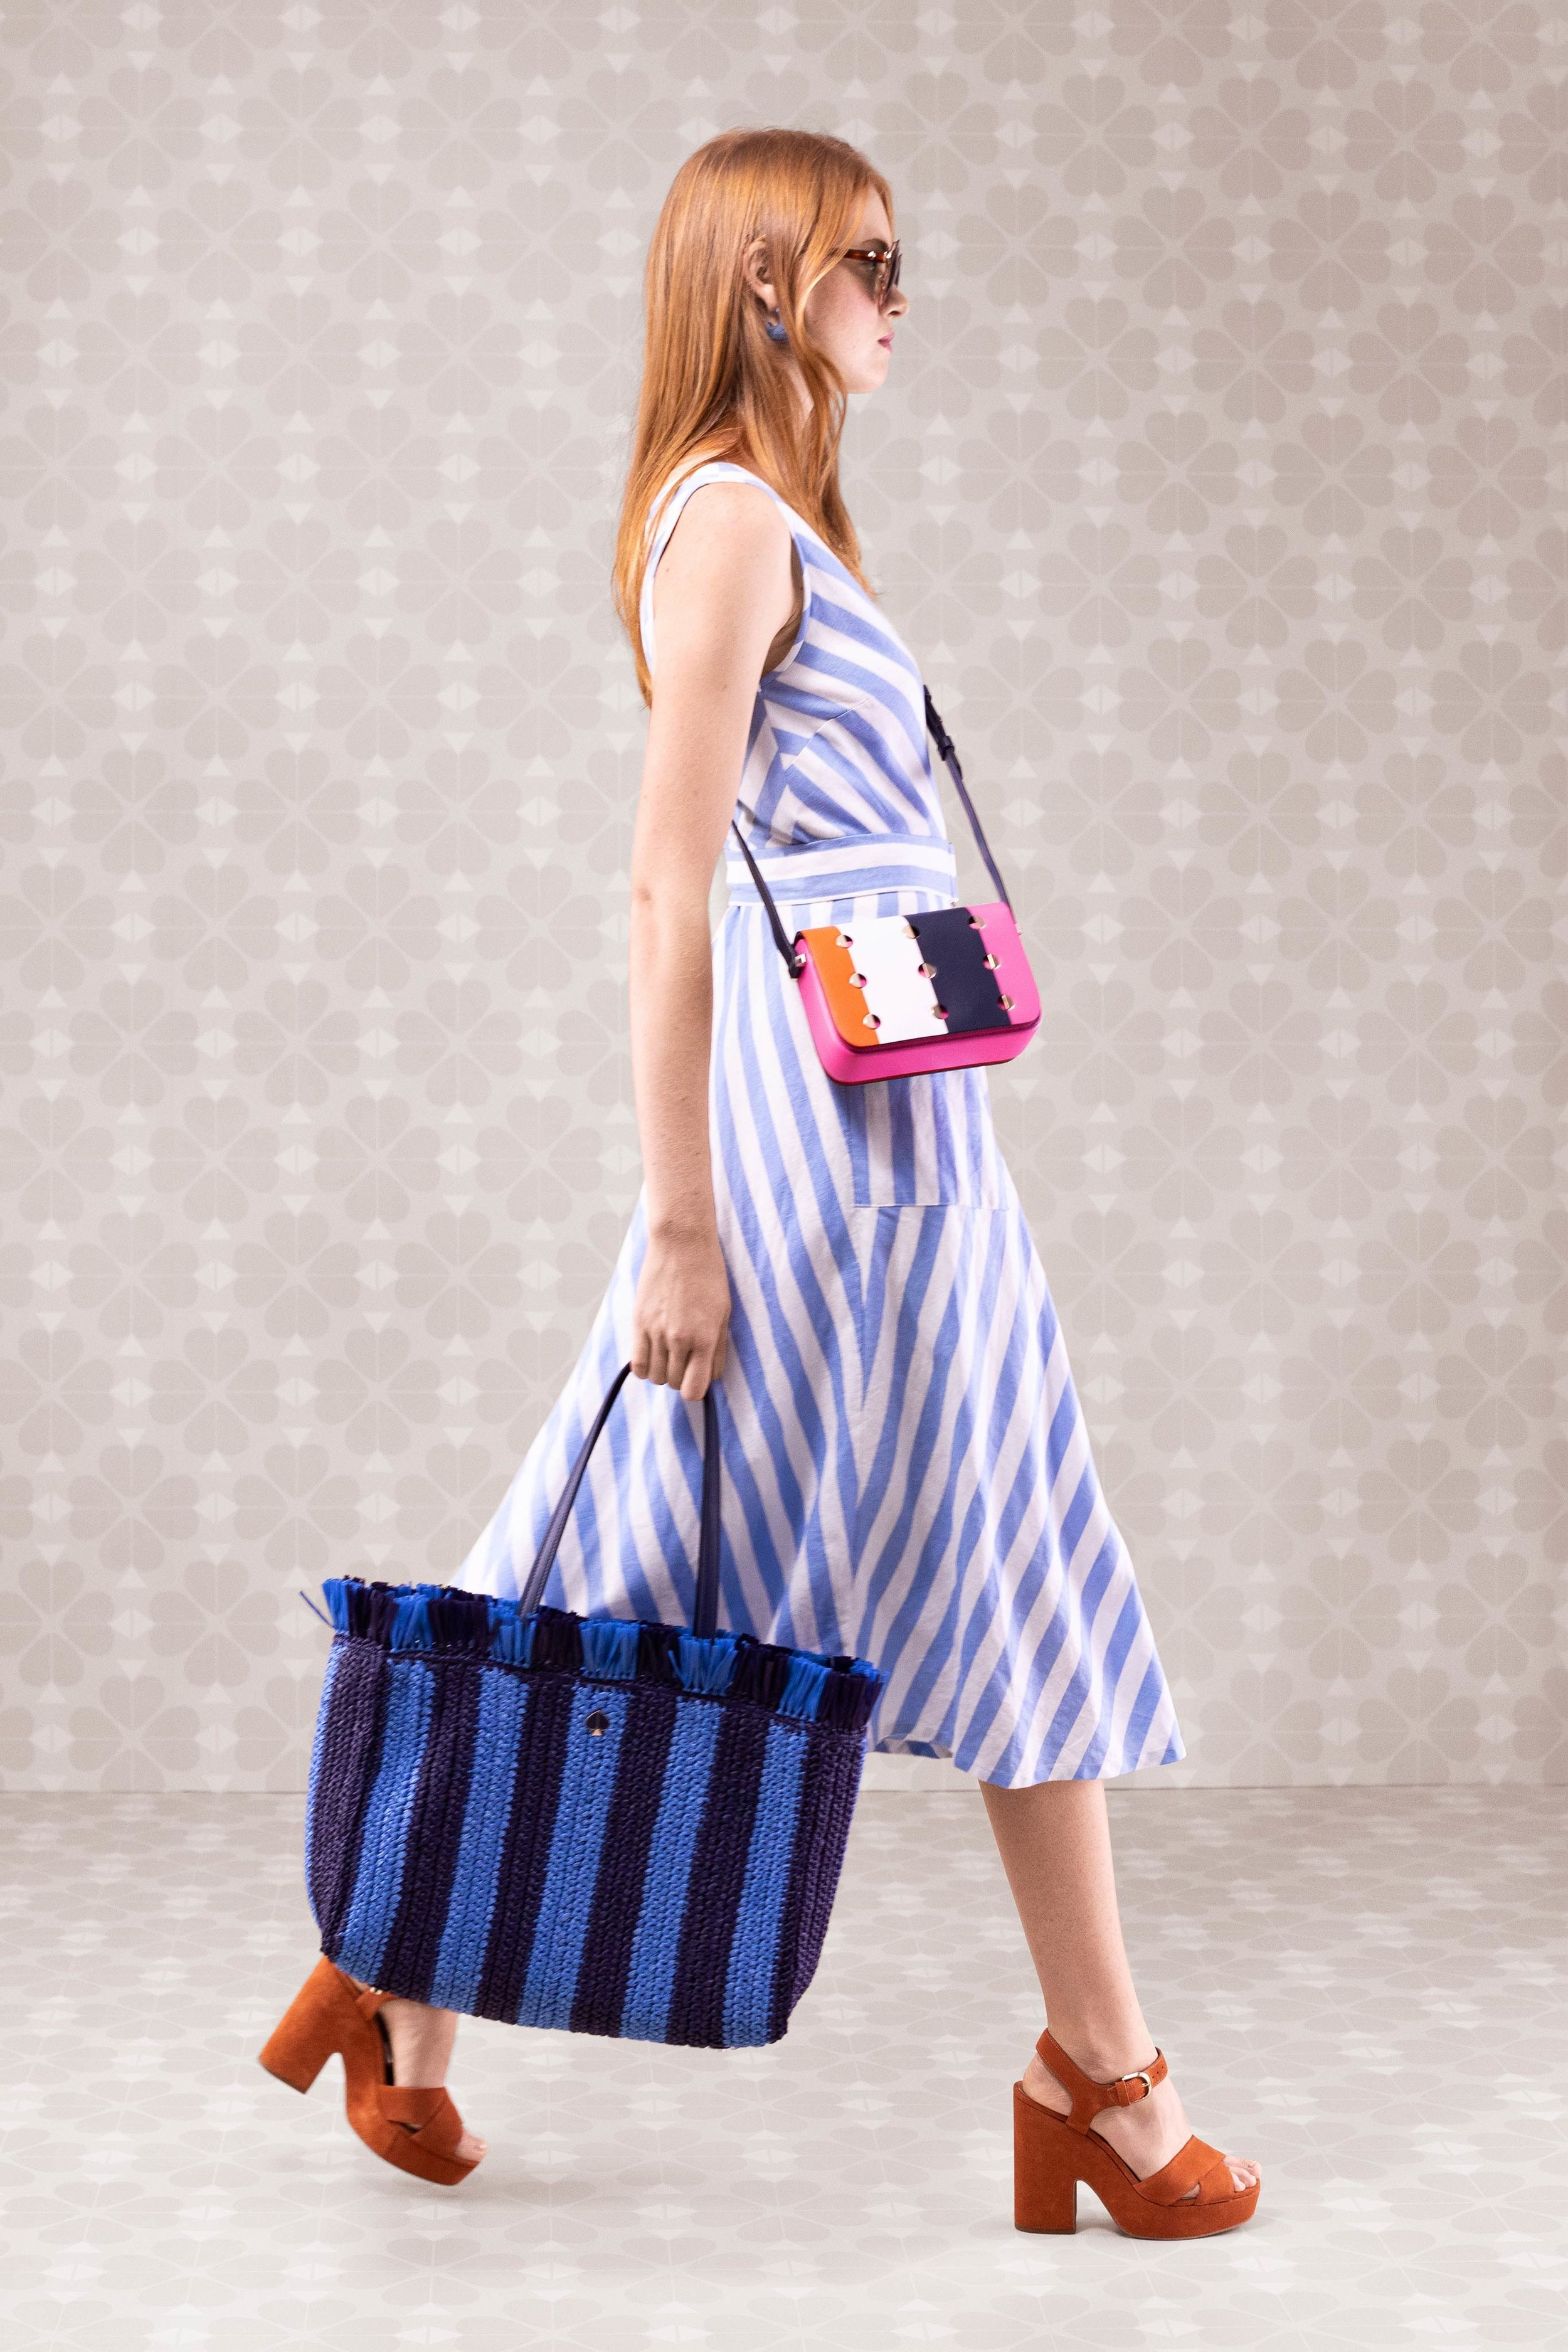 00014-kate-spade-new-york-pre-fall-2019.jpg